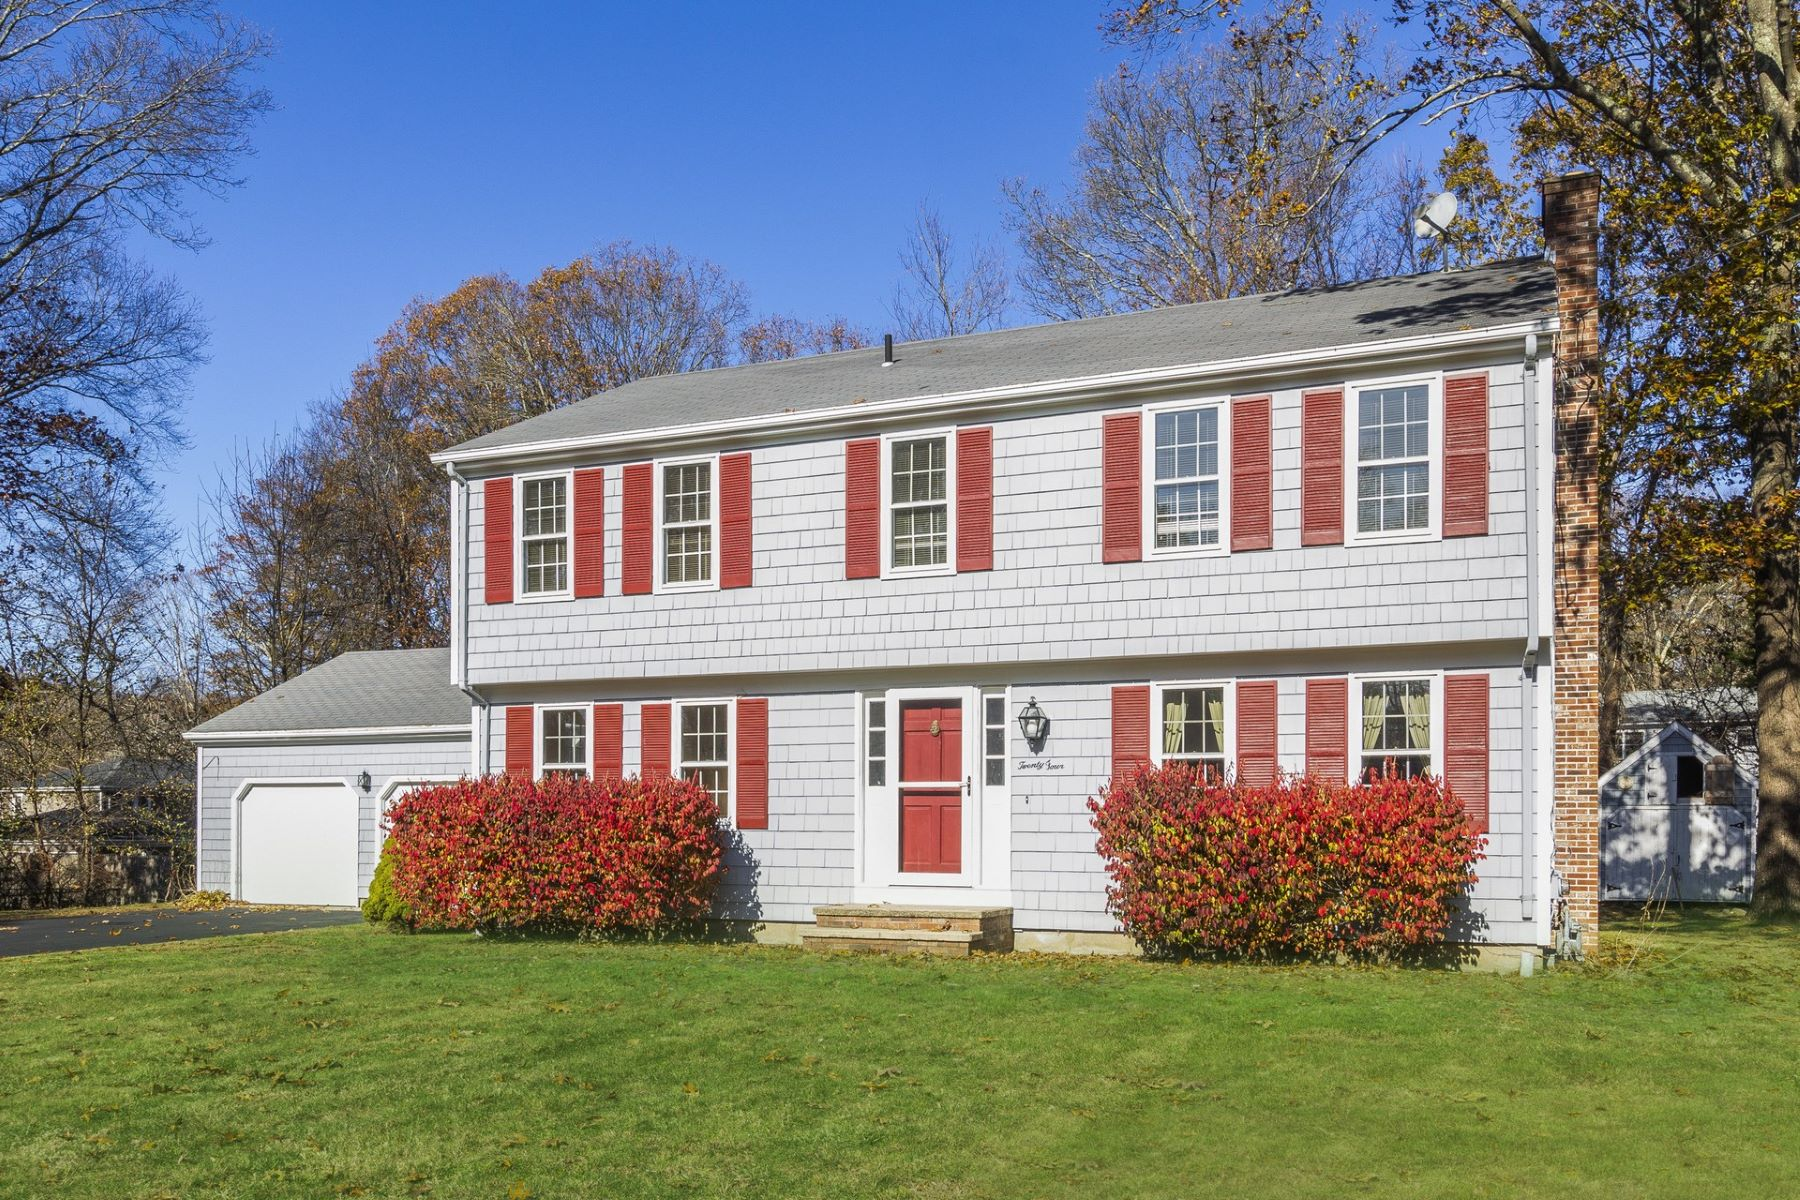 Single Family Homes for Sale at 24 Big Oak Drive, North Kingstown, RI North Kingstown, Rhode Island 02852 United States